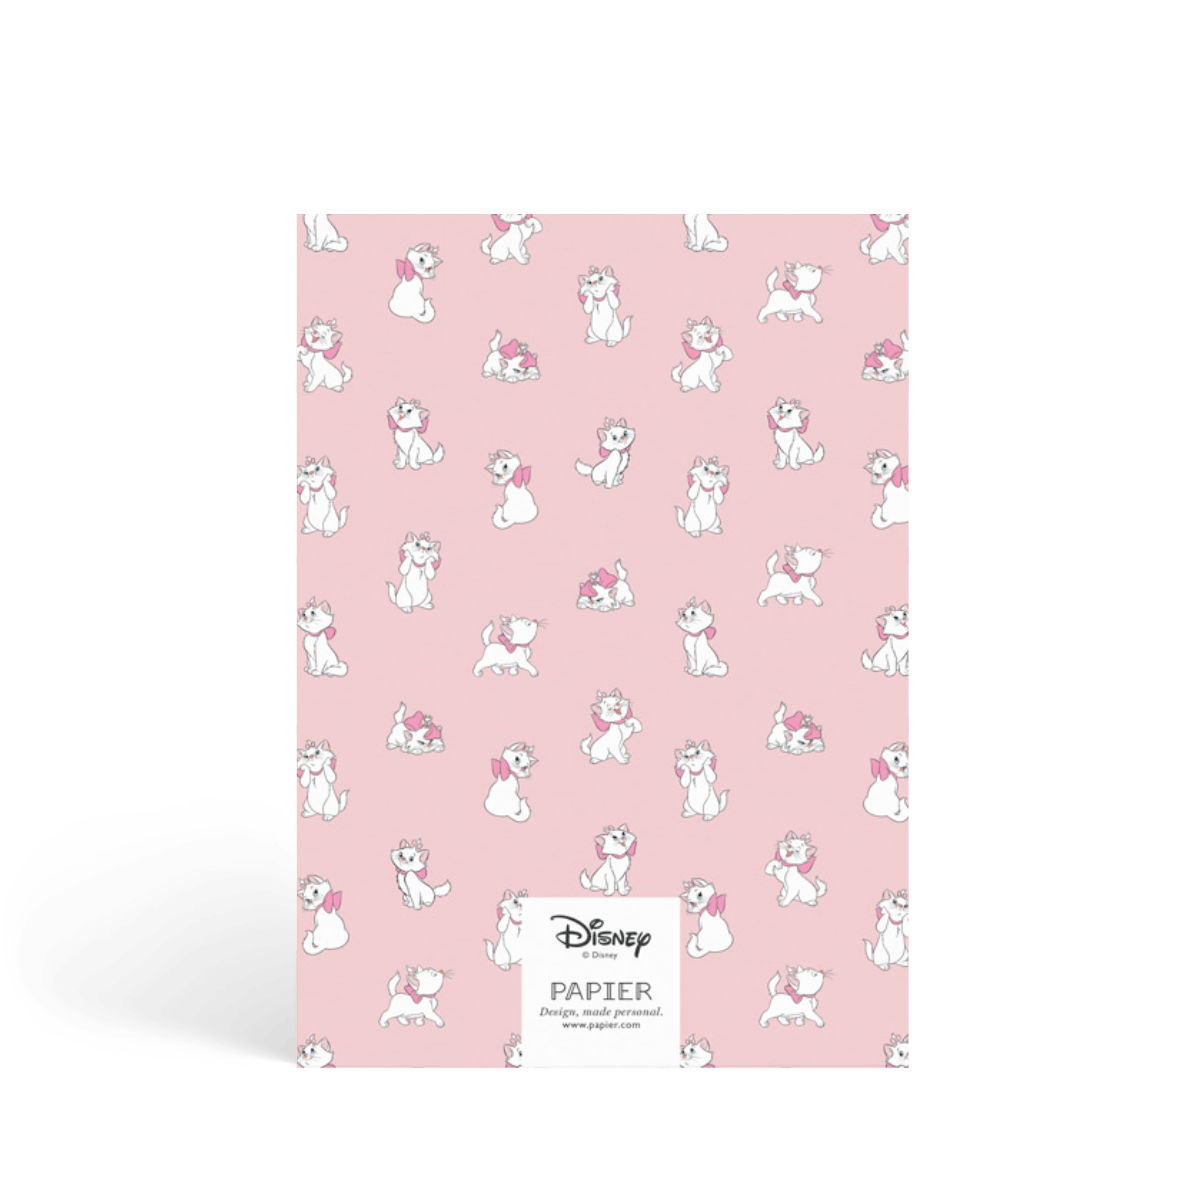 Https%3a%2f%2fwww.papier.com%2fproduct image%2f57309%2f5%2fmarie aristocats 13765 back 1569451637.png?ixlib=rb 1.1